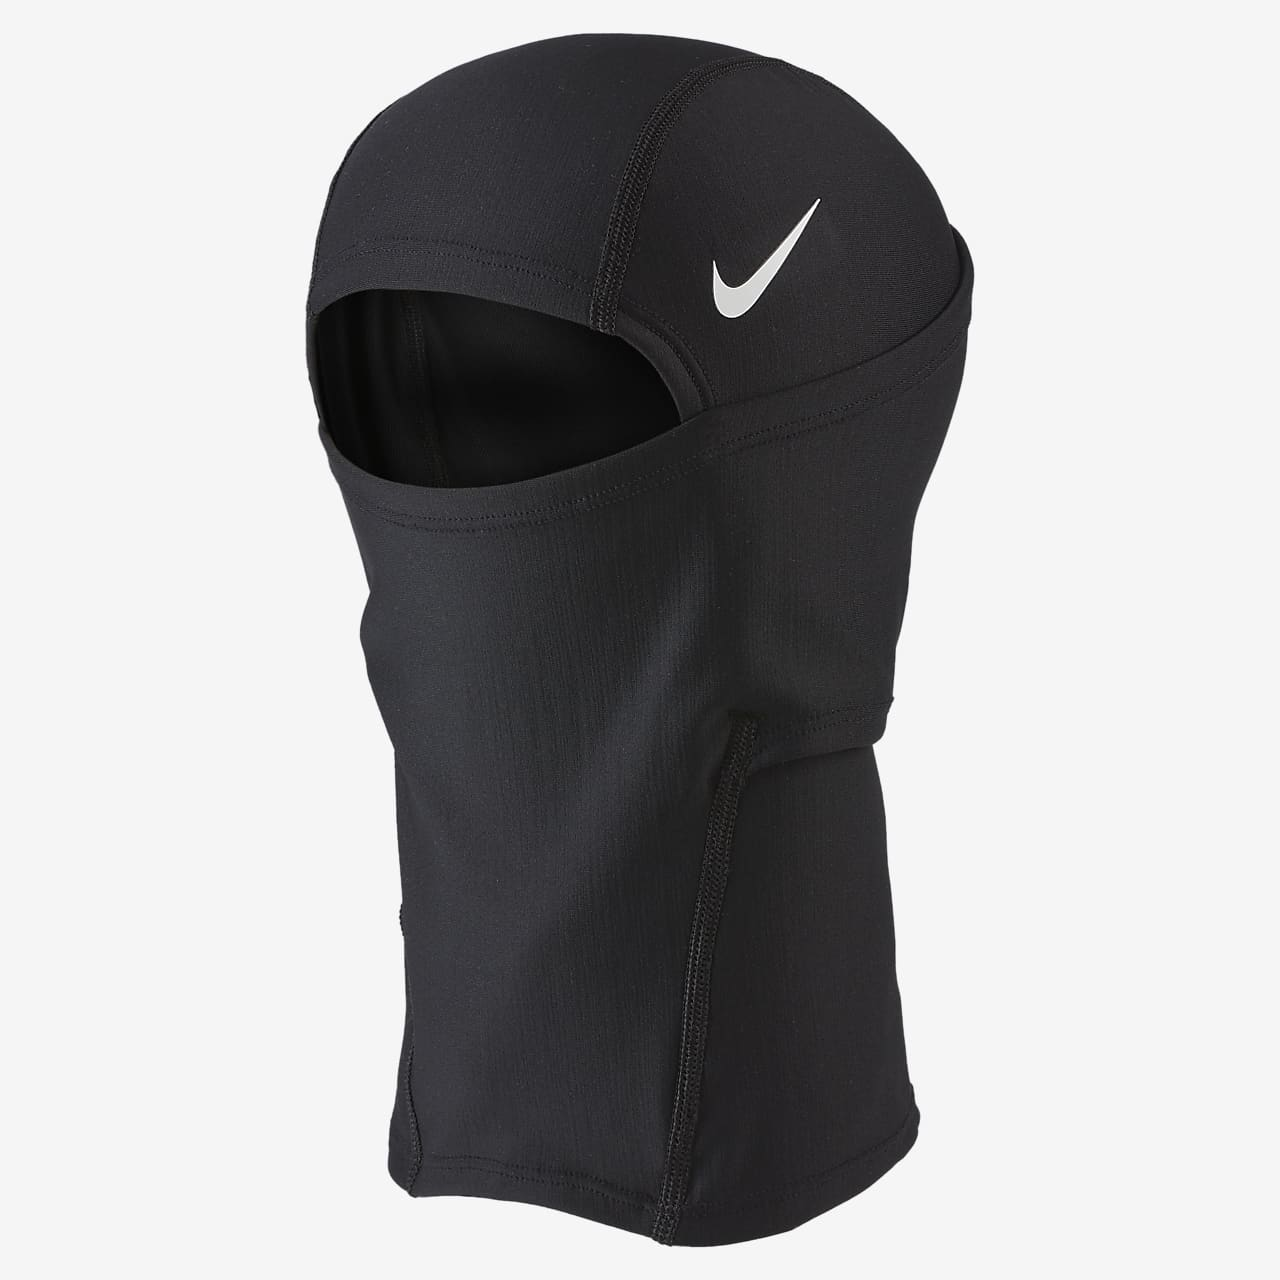 new style e2249 c4779 Low Resolution Nike Pro Hyperwarm Hood Nike Pro Hyperwarm Hood